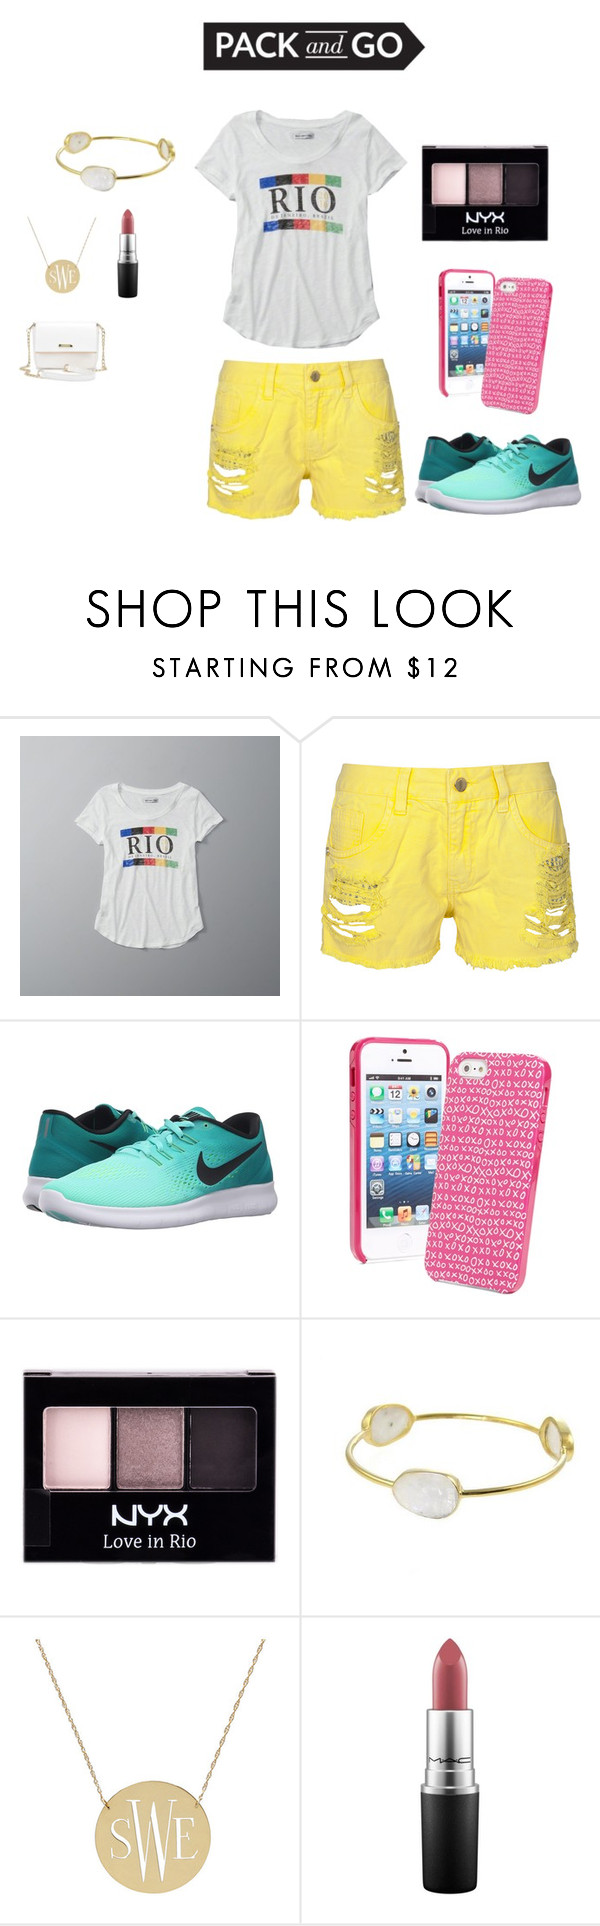 """""""Rio2016"""" by bearteddyblitz on Polyvore featuring Abercrombie & Fitch, NIKE, Vera Bradley, NYX and MAC Cosmetics"""